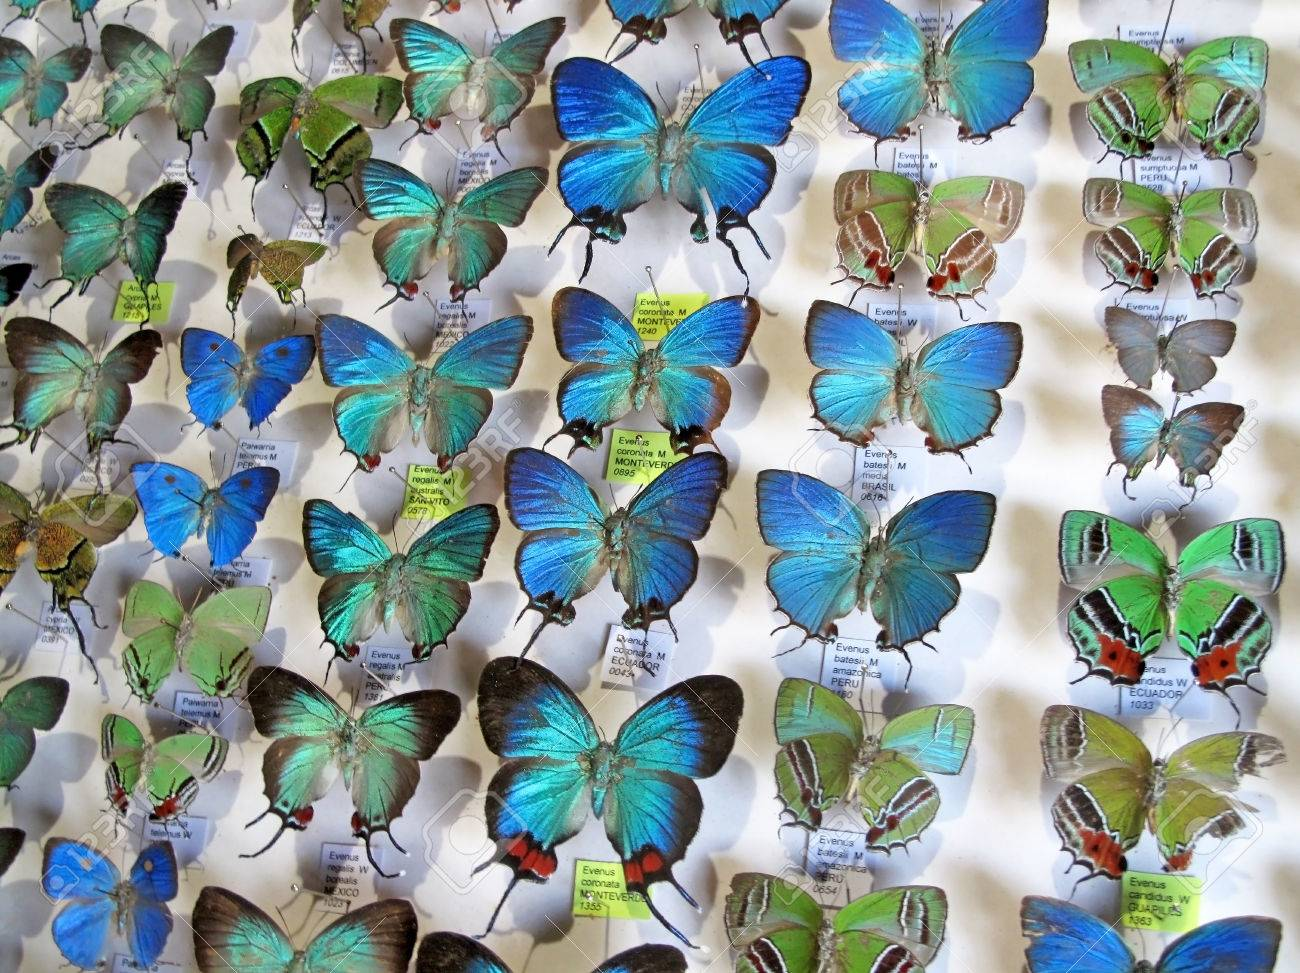 82891867-blue-morpho-butterfly-collectio